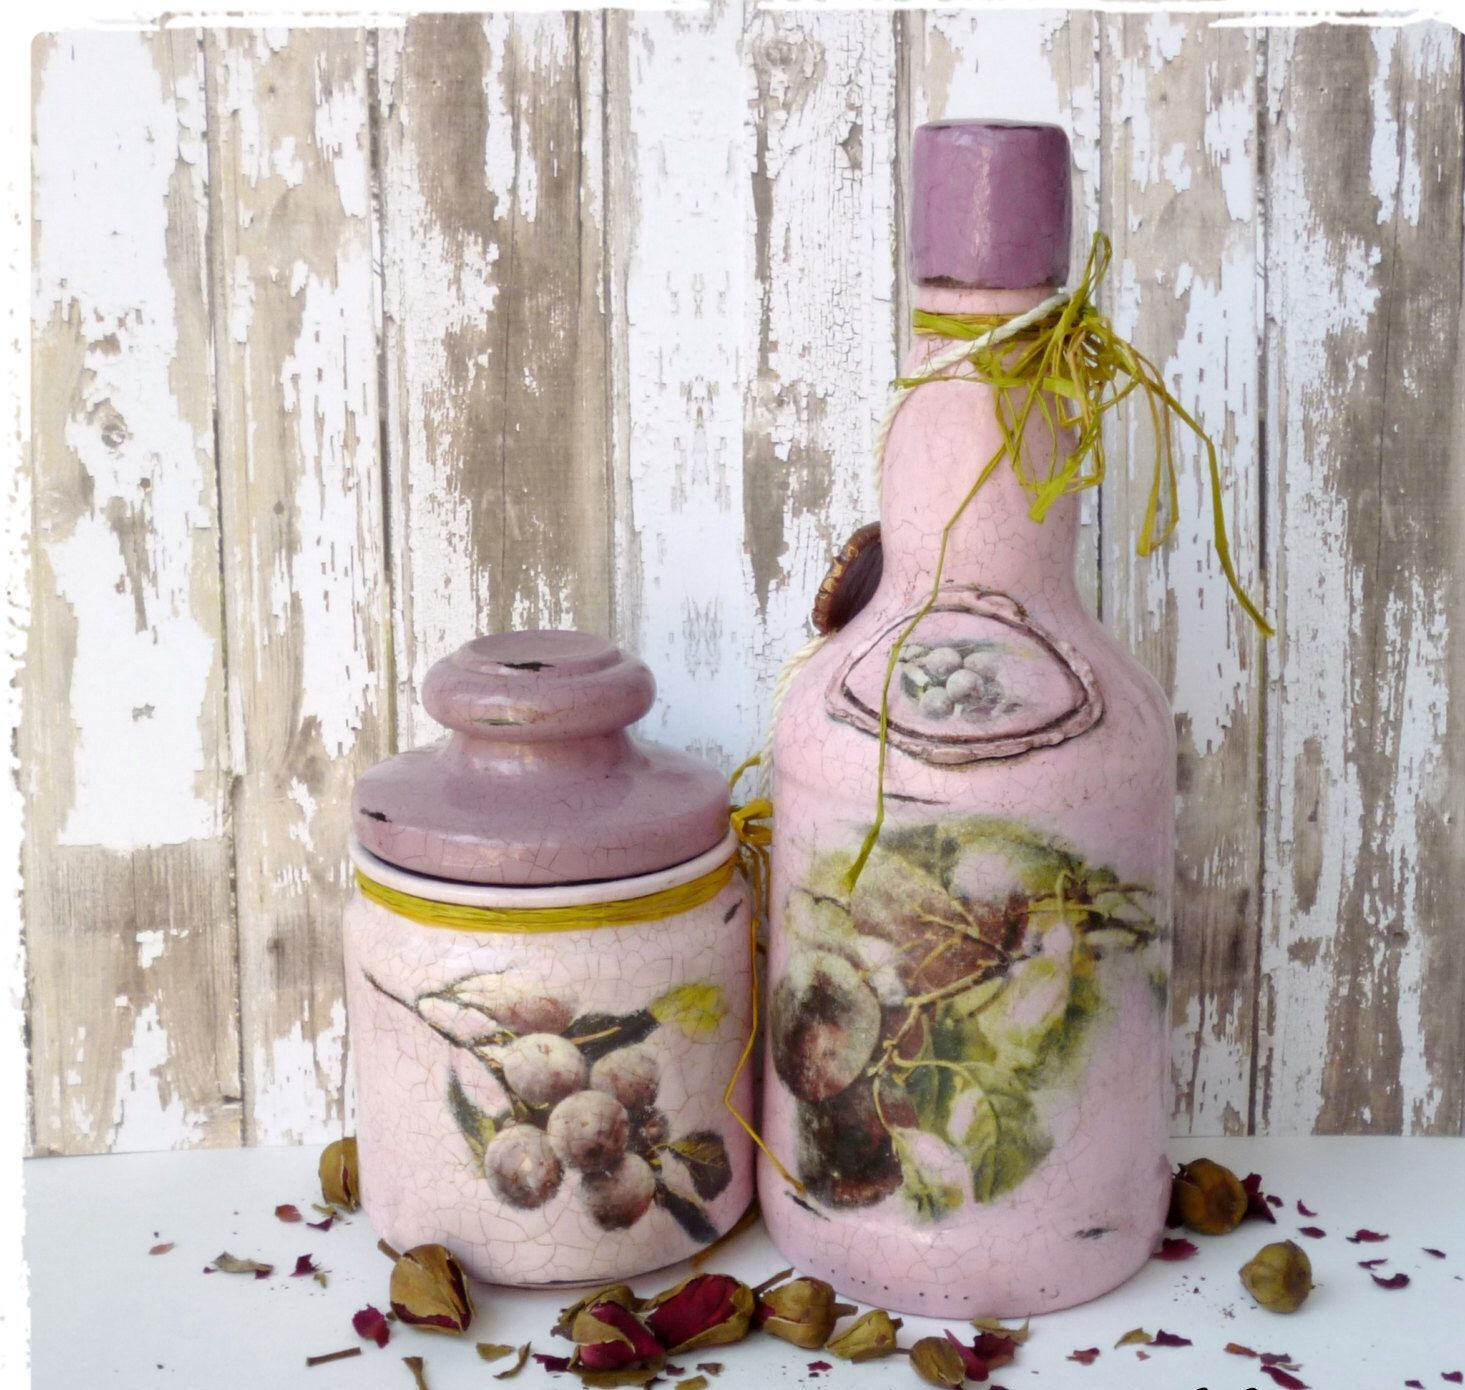 #Canister #Chic #Decor #Decorative #Fruit #Gift